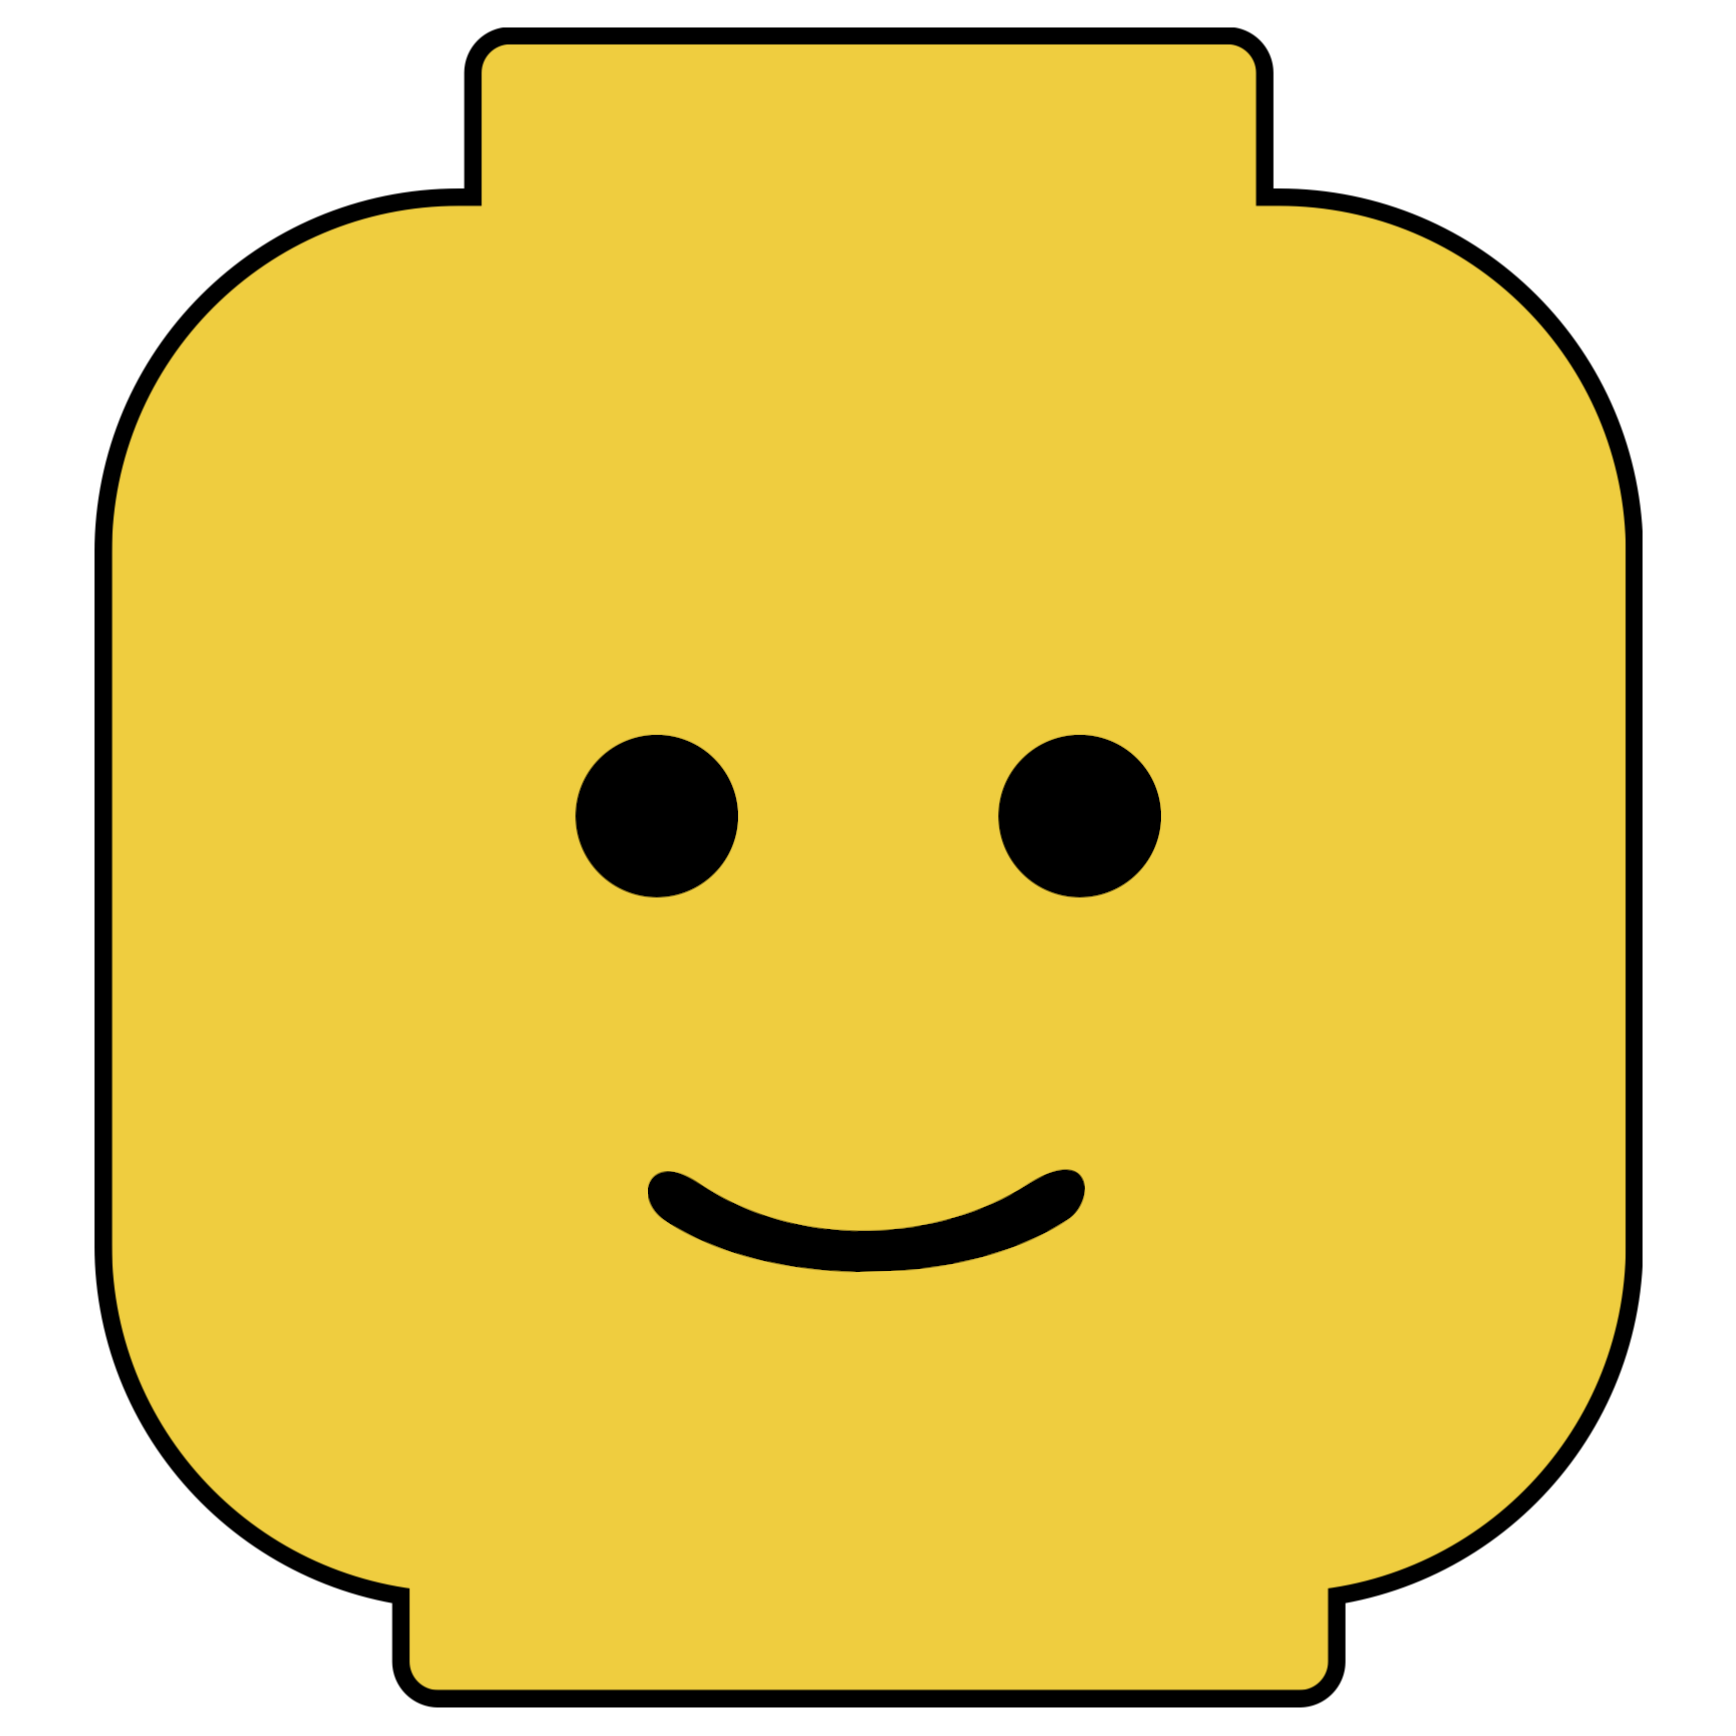 picture relating to Lego Faces Printable titled Pin the Mind upon the Lego Guy Social gathering Recreation Cost-free Printable